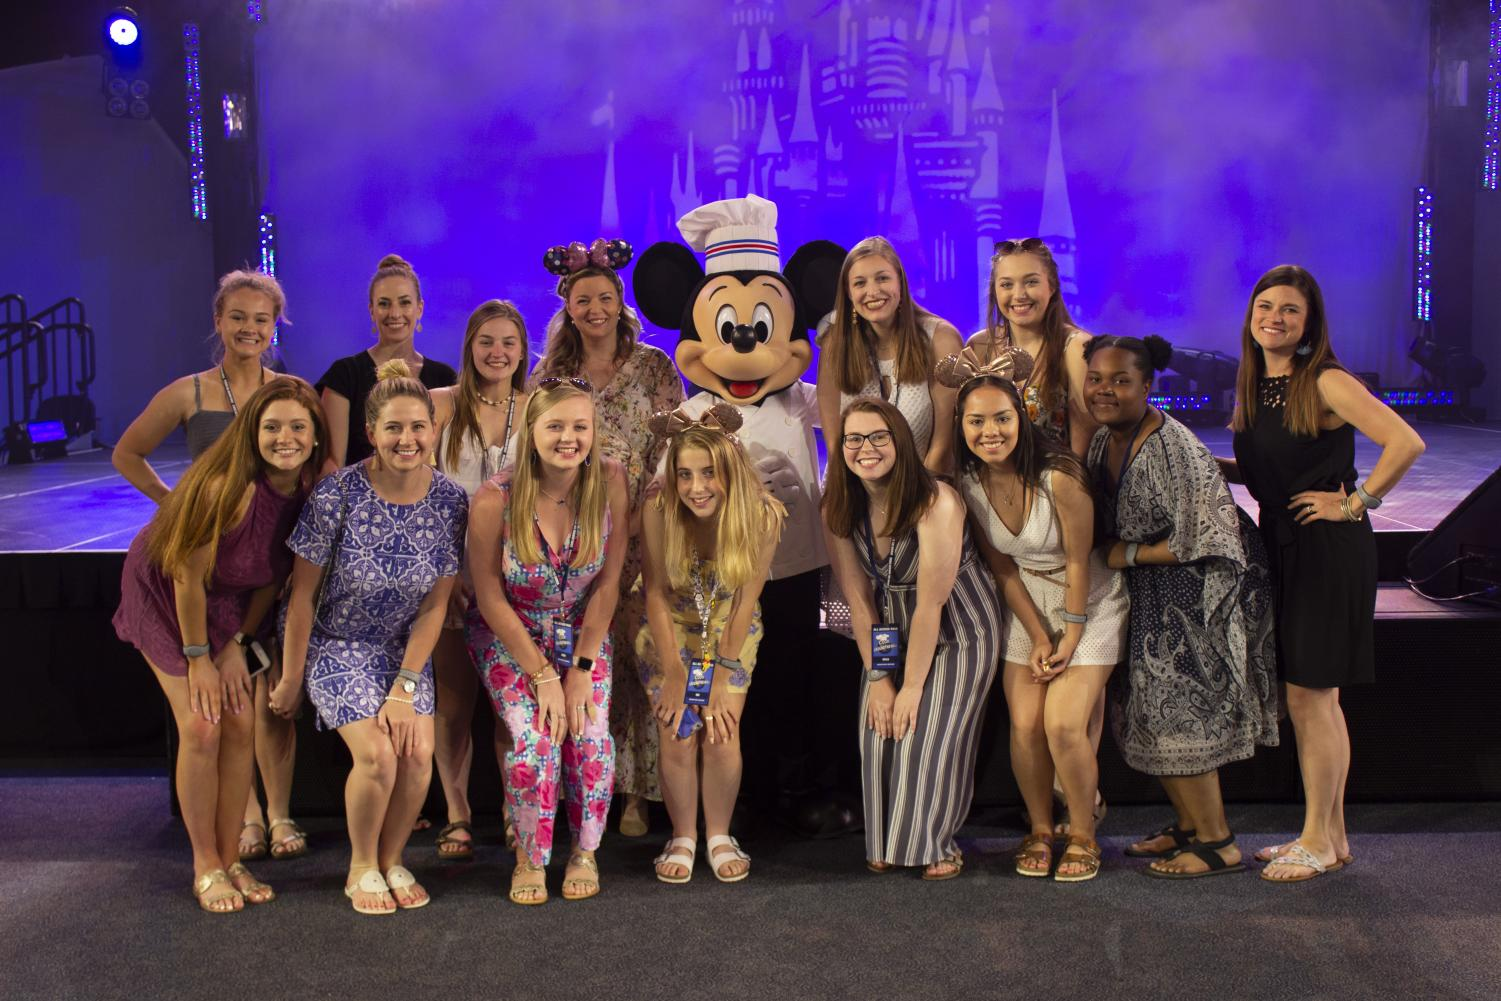 The Woodford Women pose for a picture with Chef Damaris Phillips and Chef Mickey.